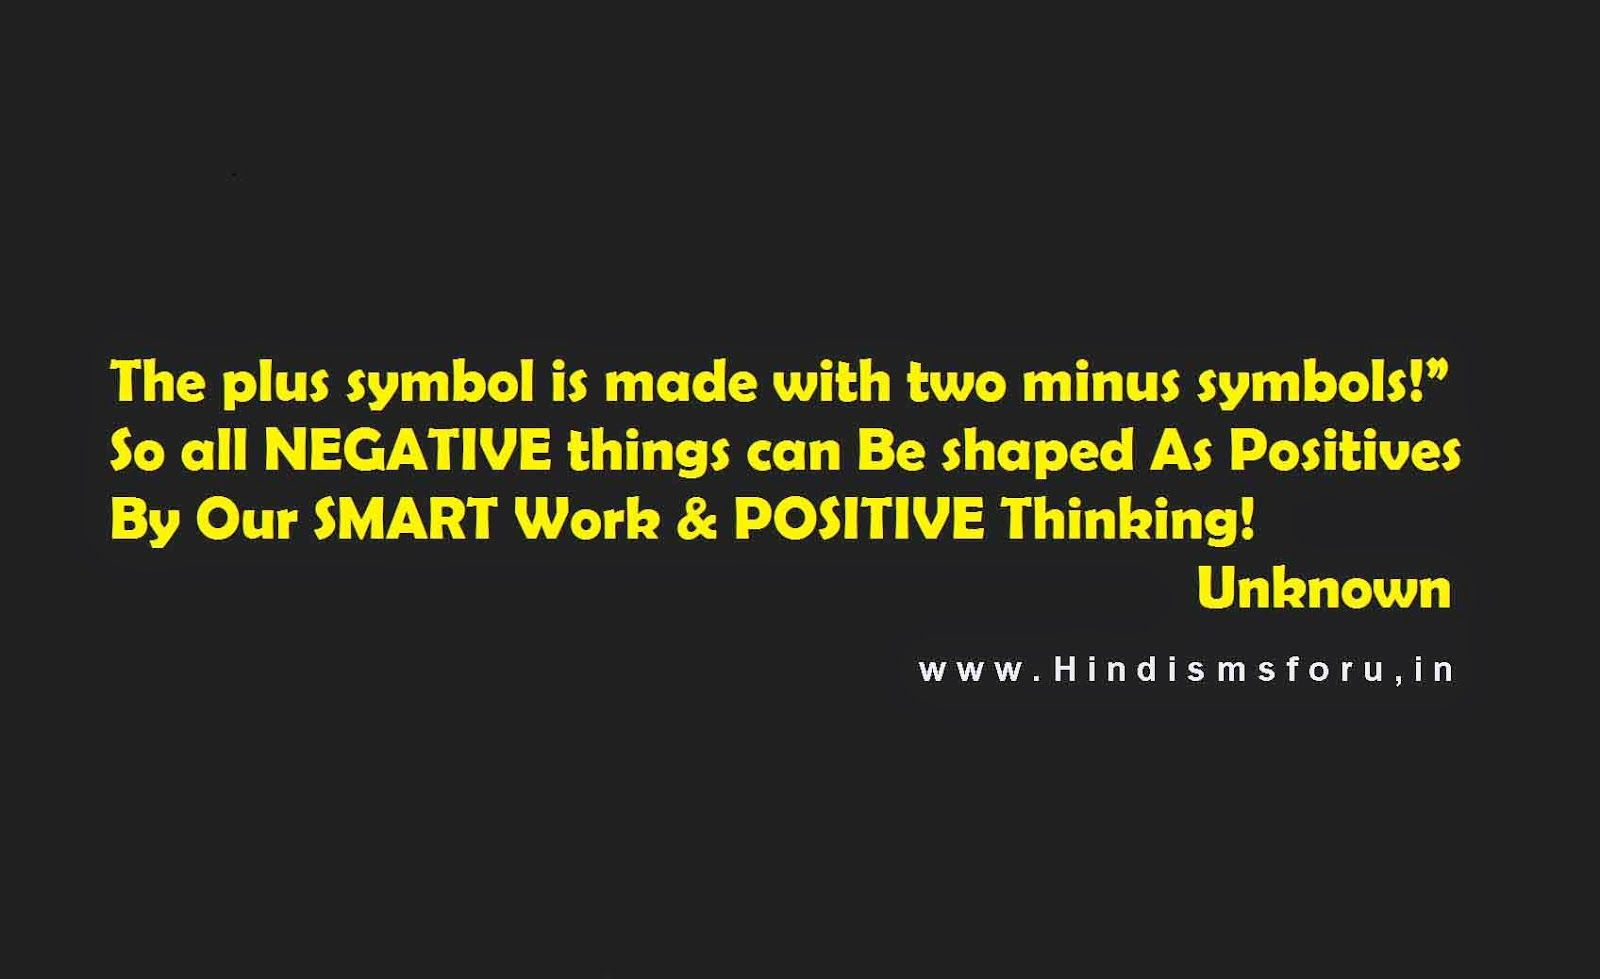 Hindi sms for u the plus symbol is made with two minus symbols hindi sms for u the plus symbol is made with two minus symbols biocorpaavc Images